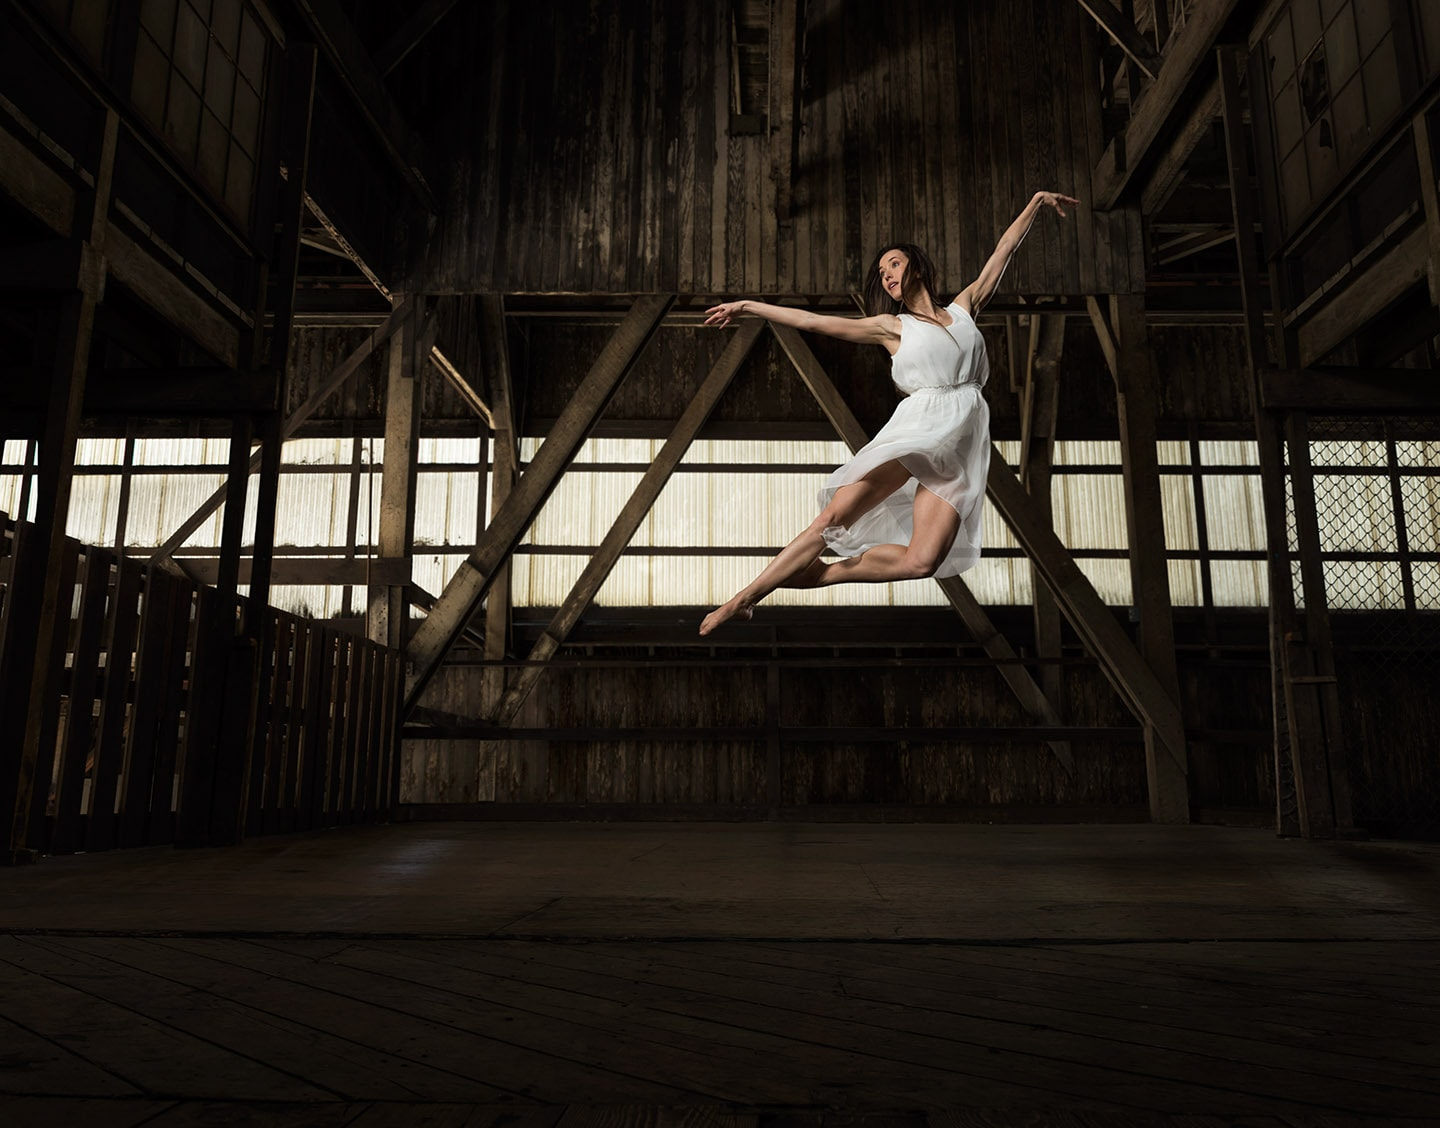 Dancer In White Profile Image of Pointe in Mid Air Jump 2